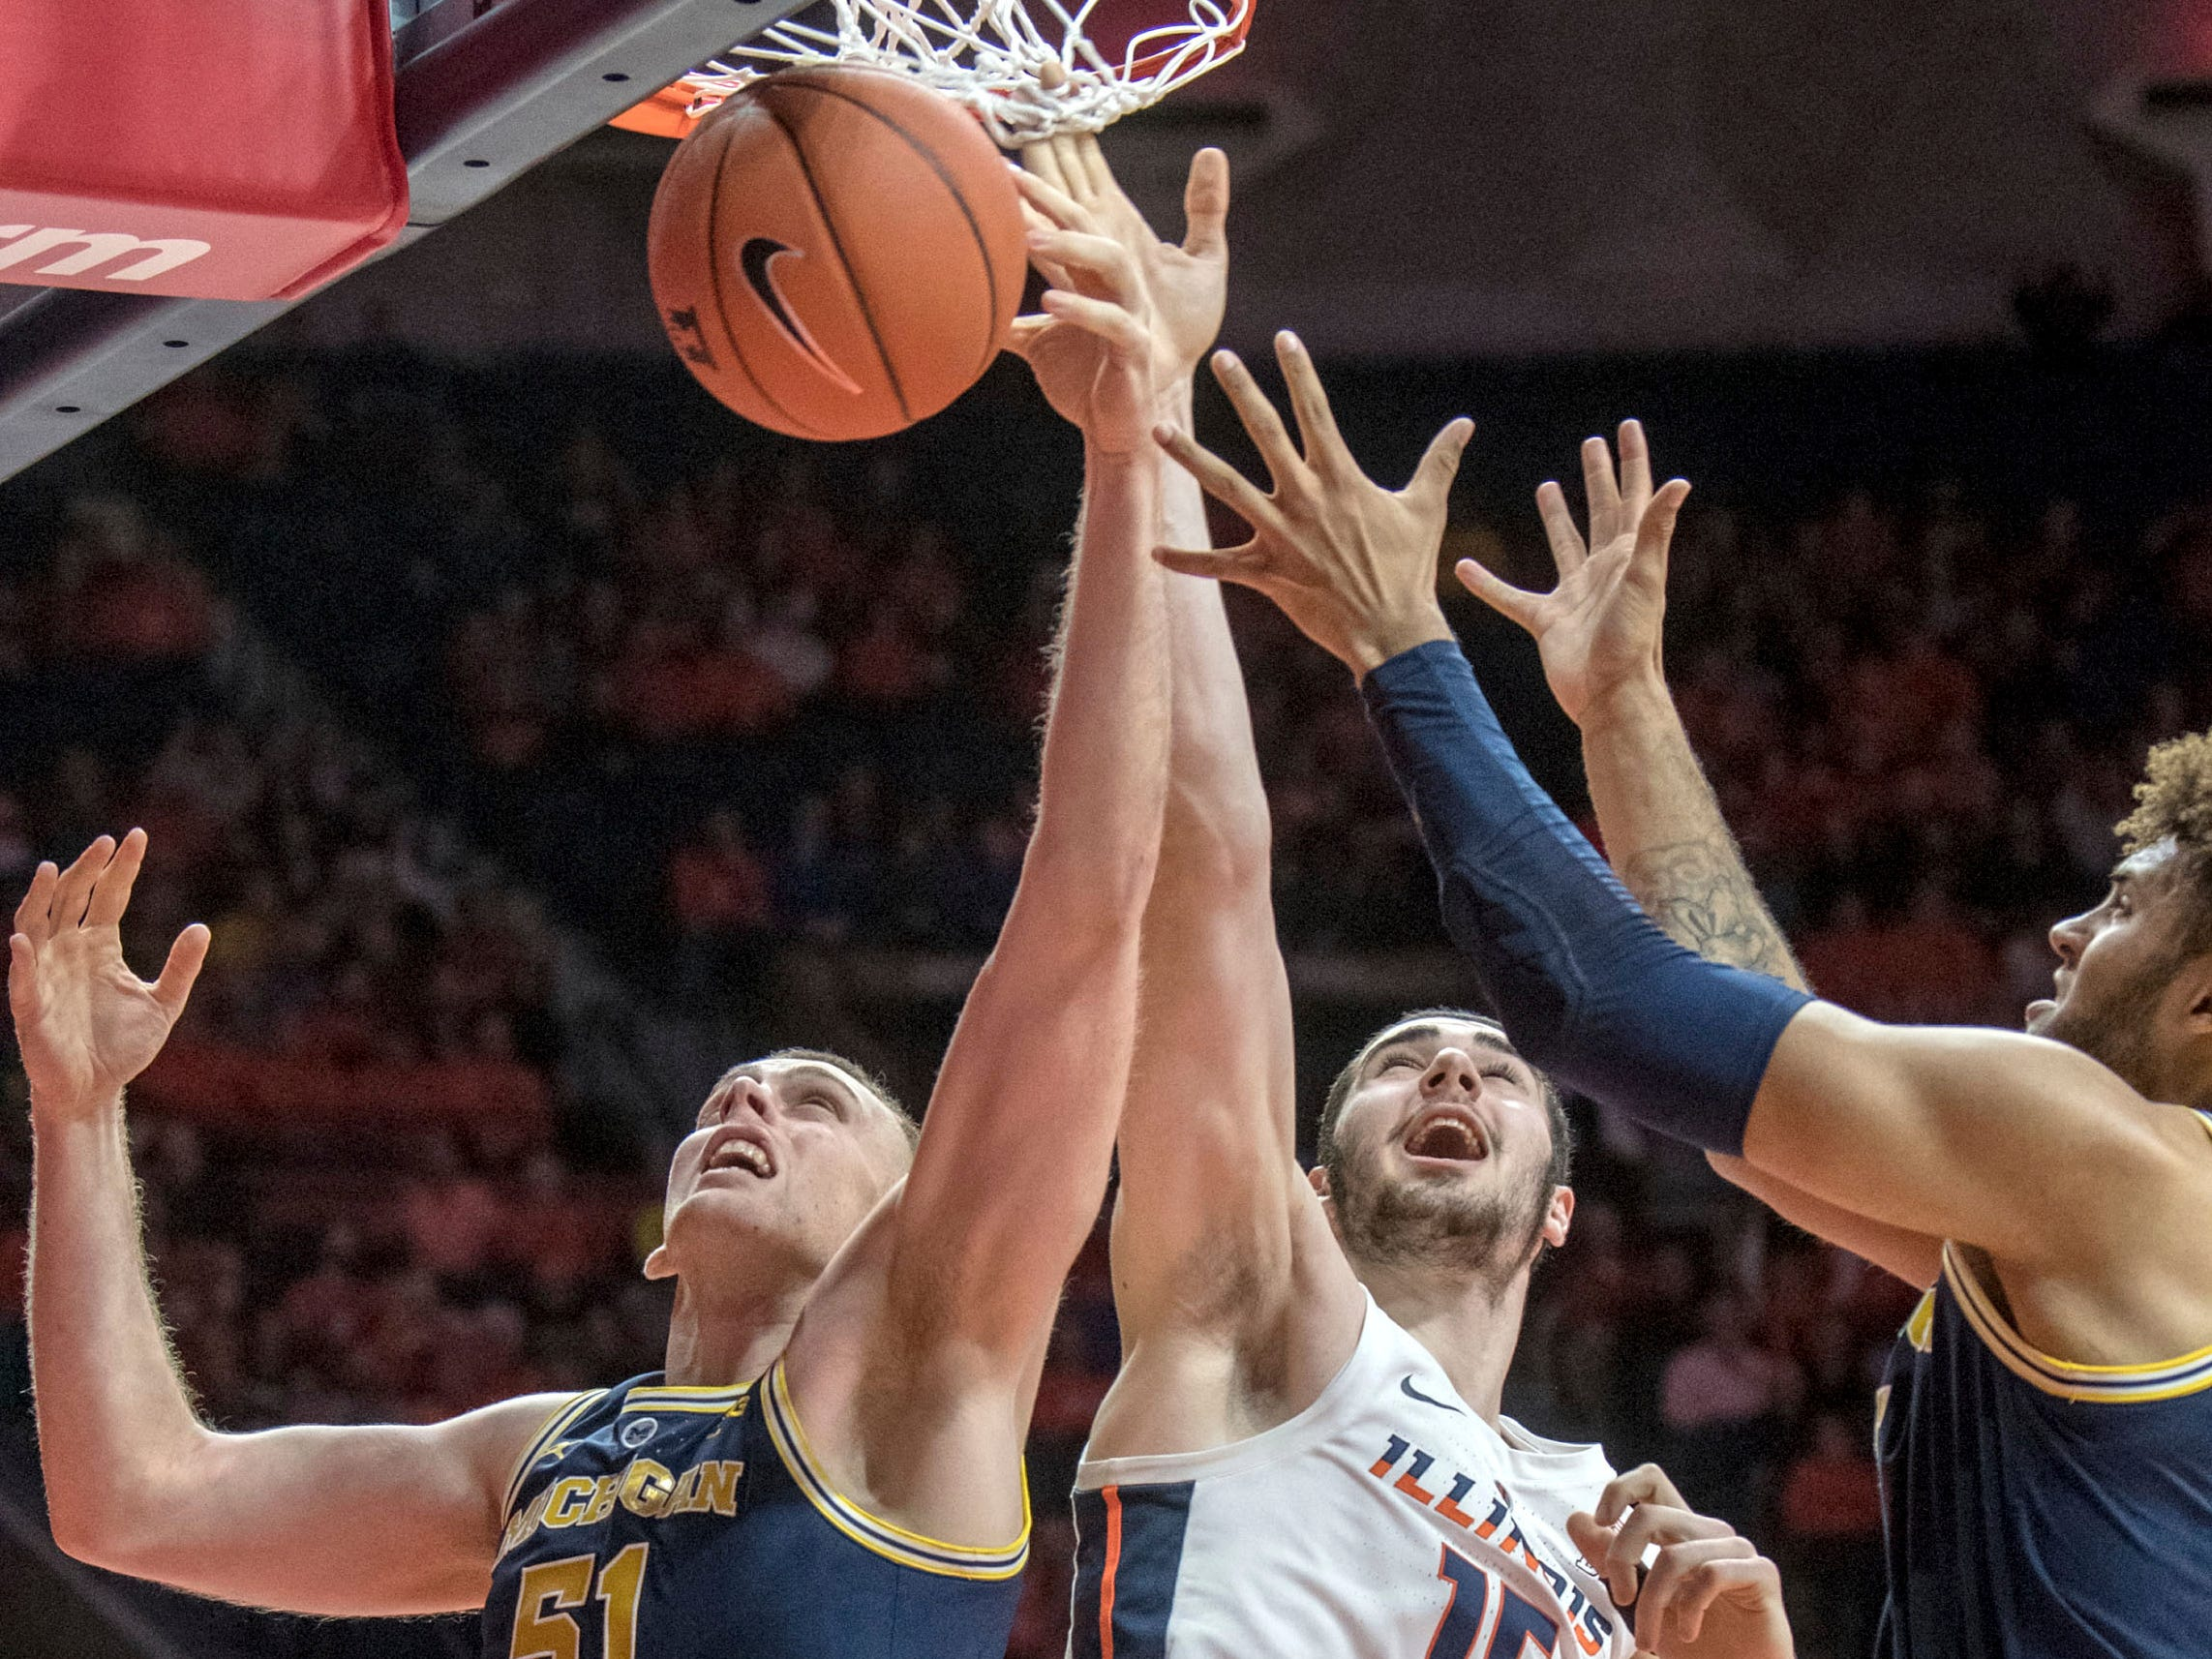 Michigan forward Austin Davis (51) and Michigan forward Isaiah Livers (4) go up for a rebound with Illinois forward Giorgi Bezhanishvili during the first half of an NCAA college basketball game in Champaign, Ill., Wednesday, Jan. 10, 2019.